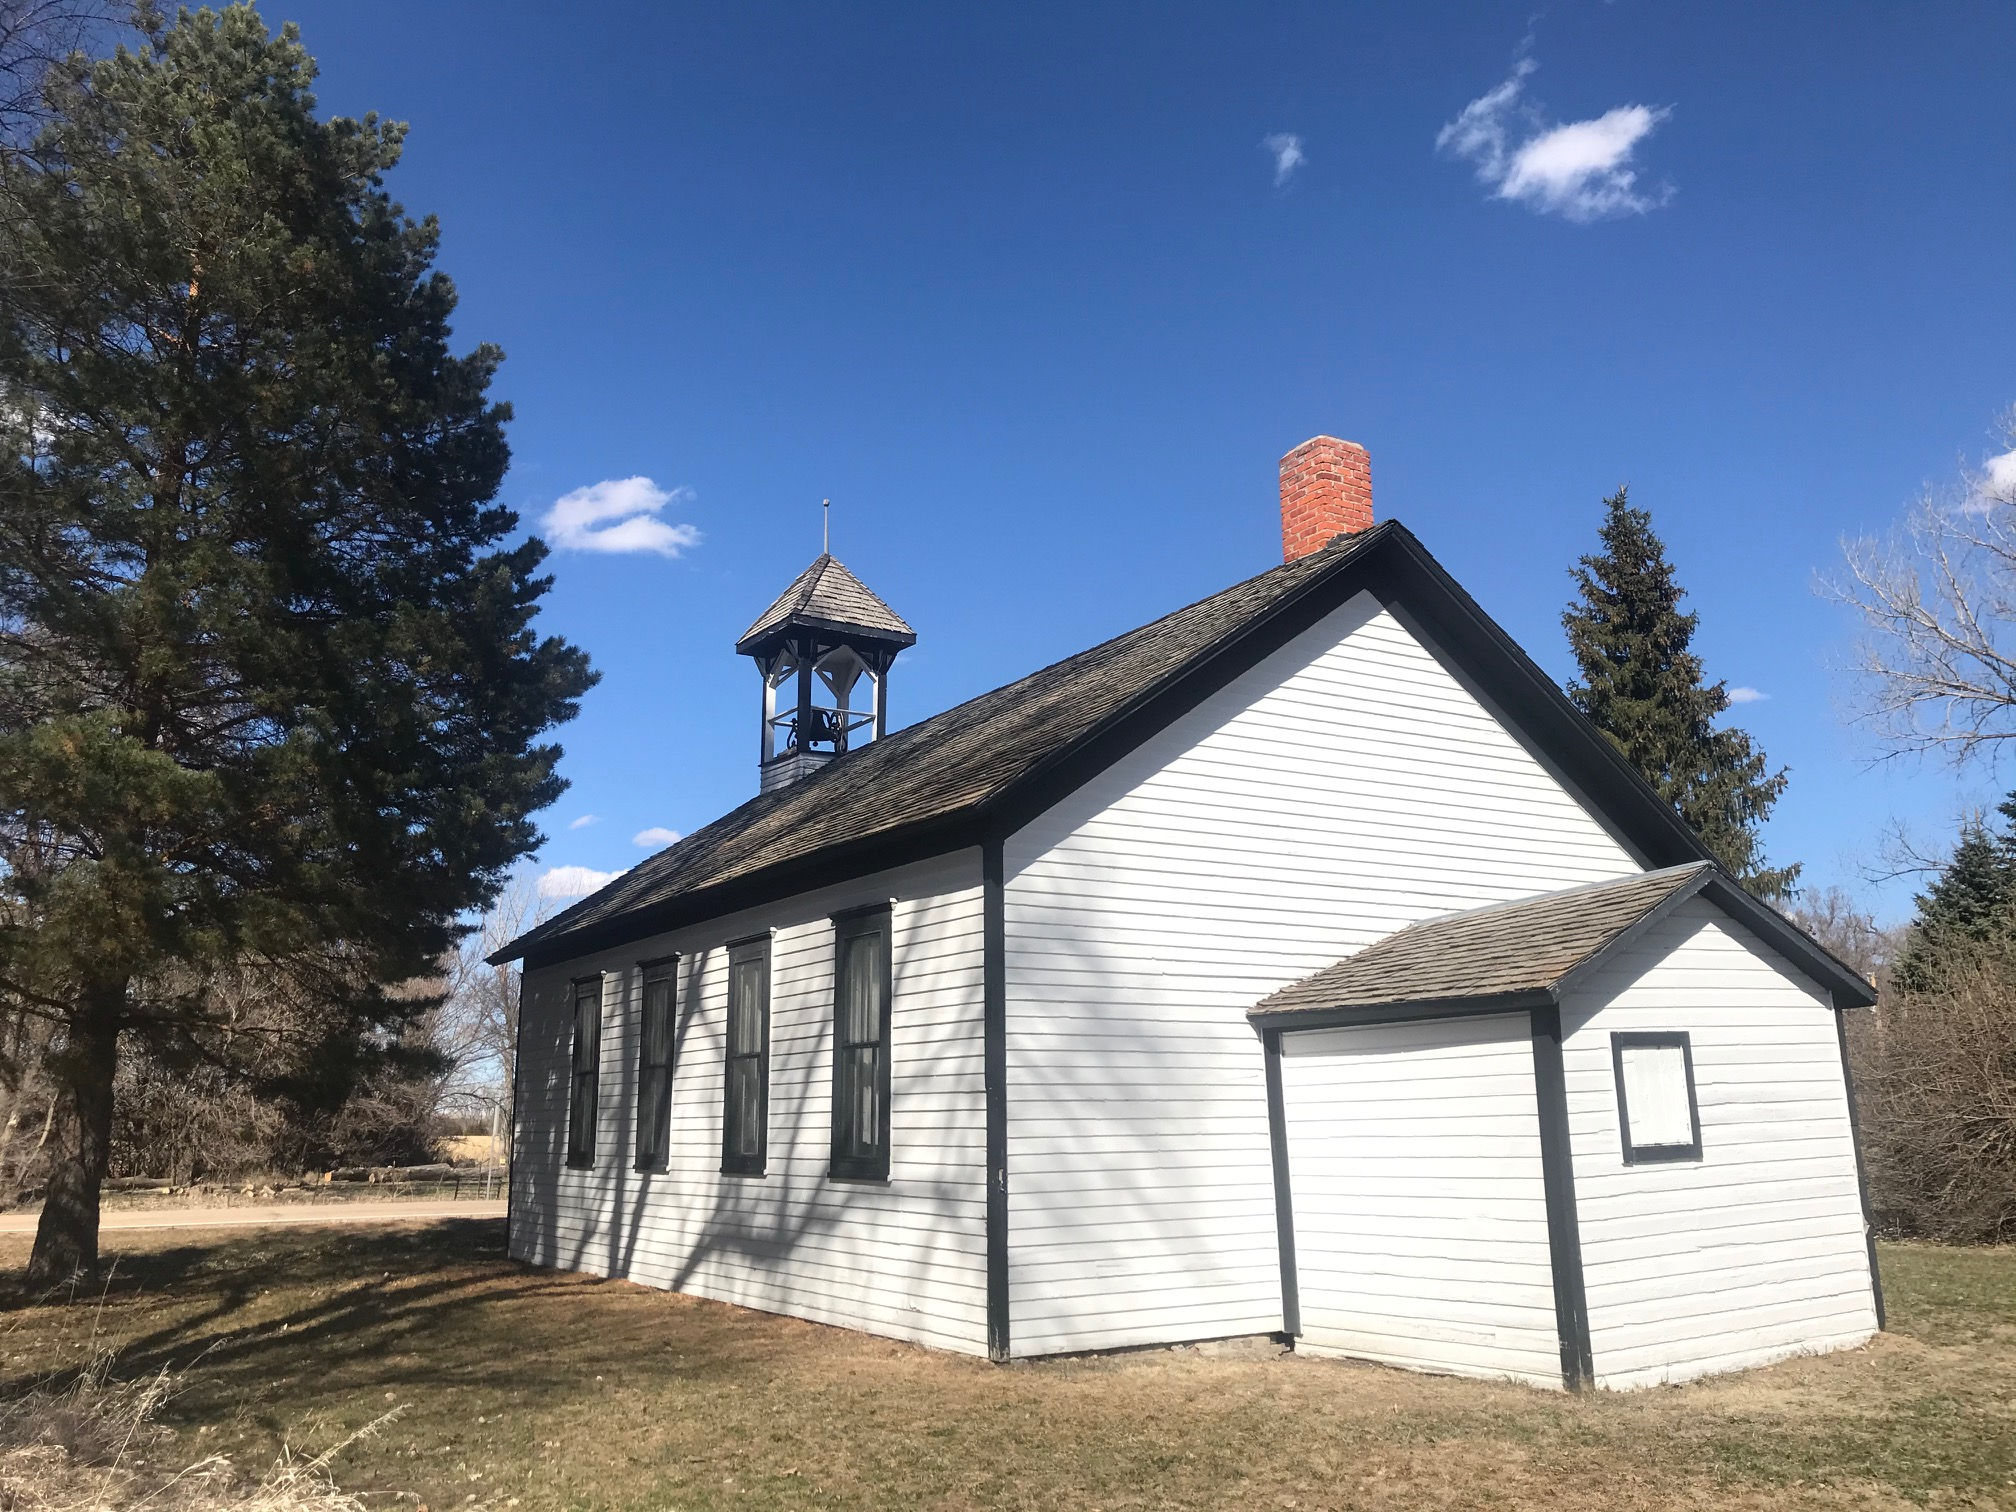 New Helena schoolhouse